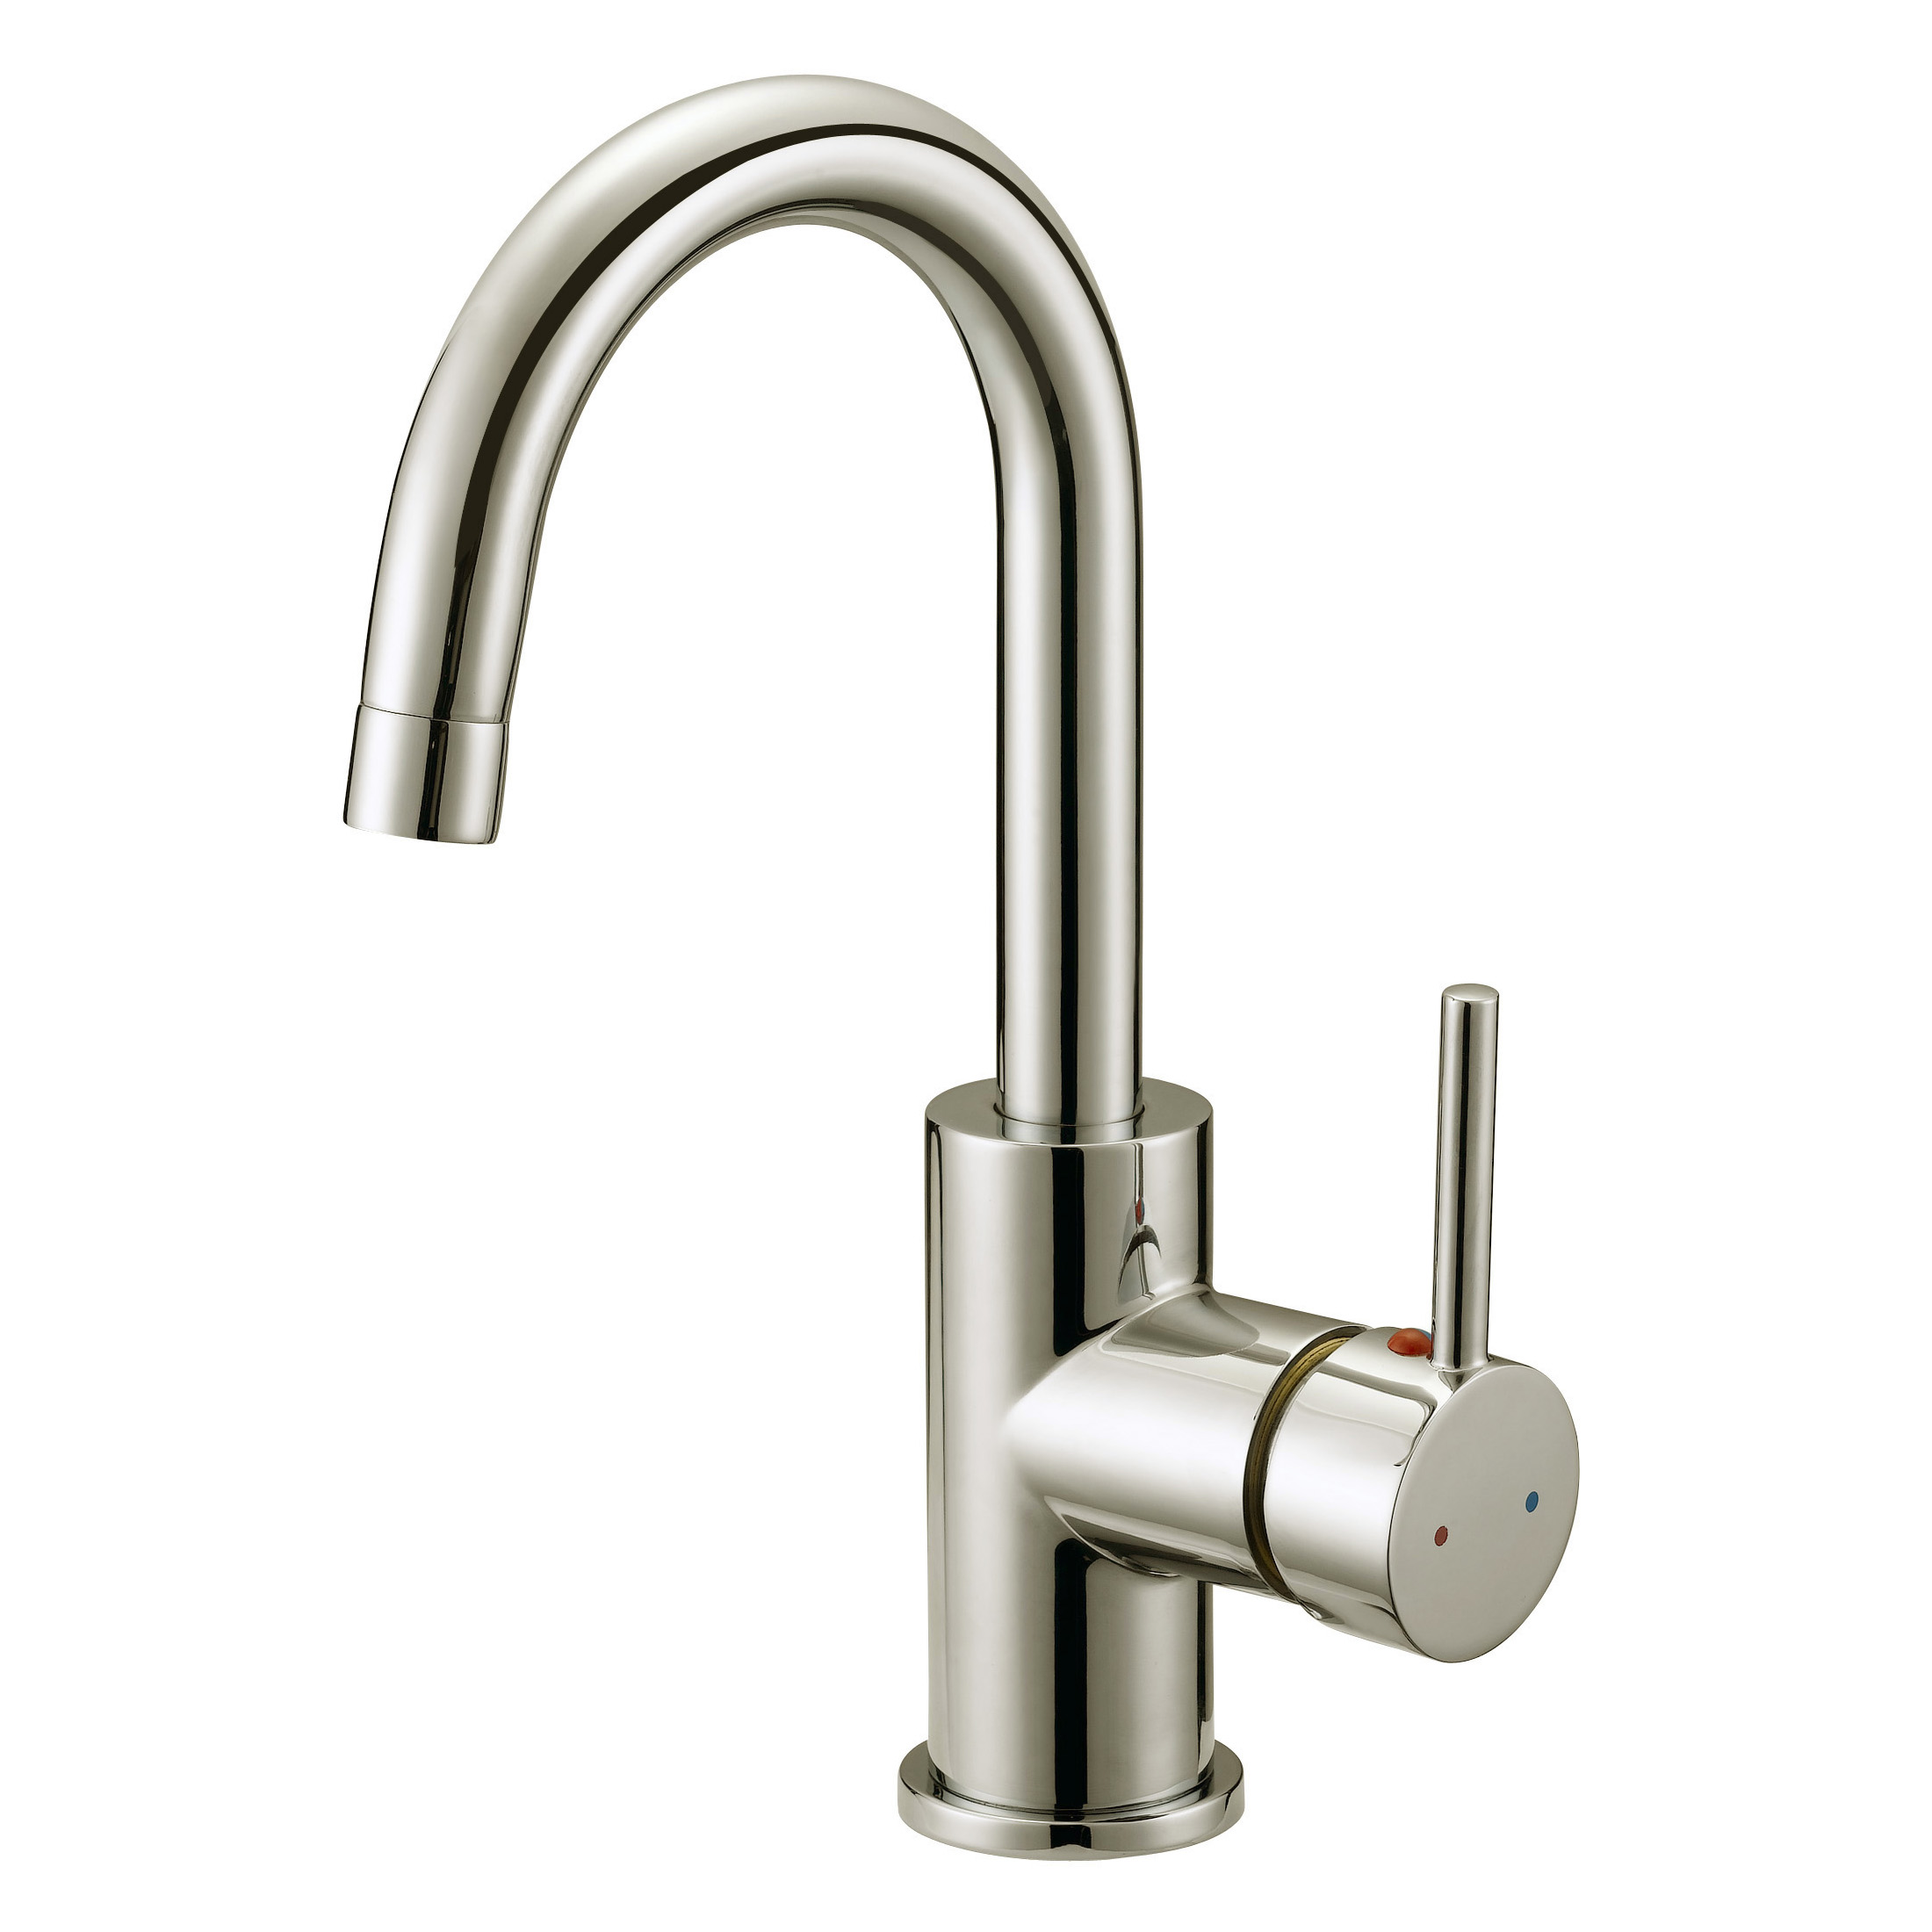 Design House 547570 Eastport Single Handle Bar Faucet, Satin Nickel Finish